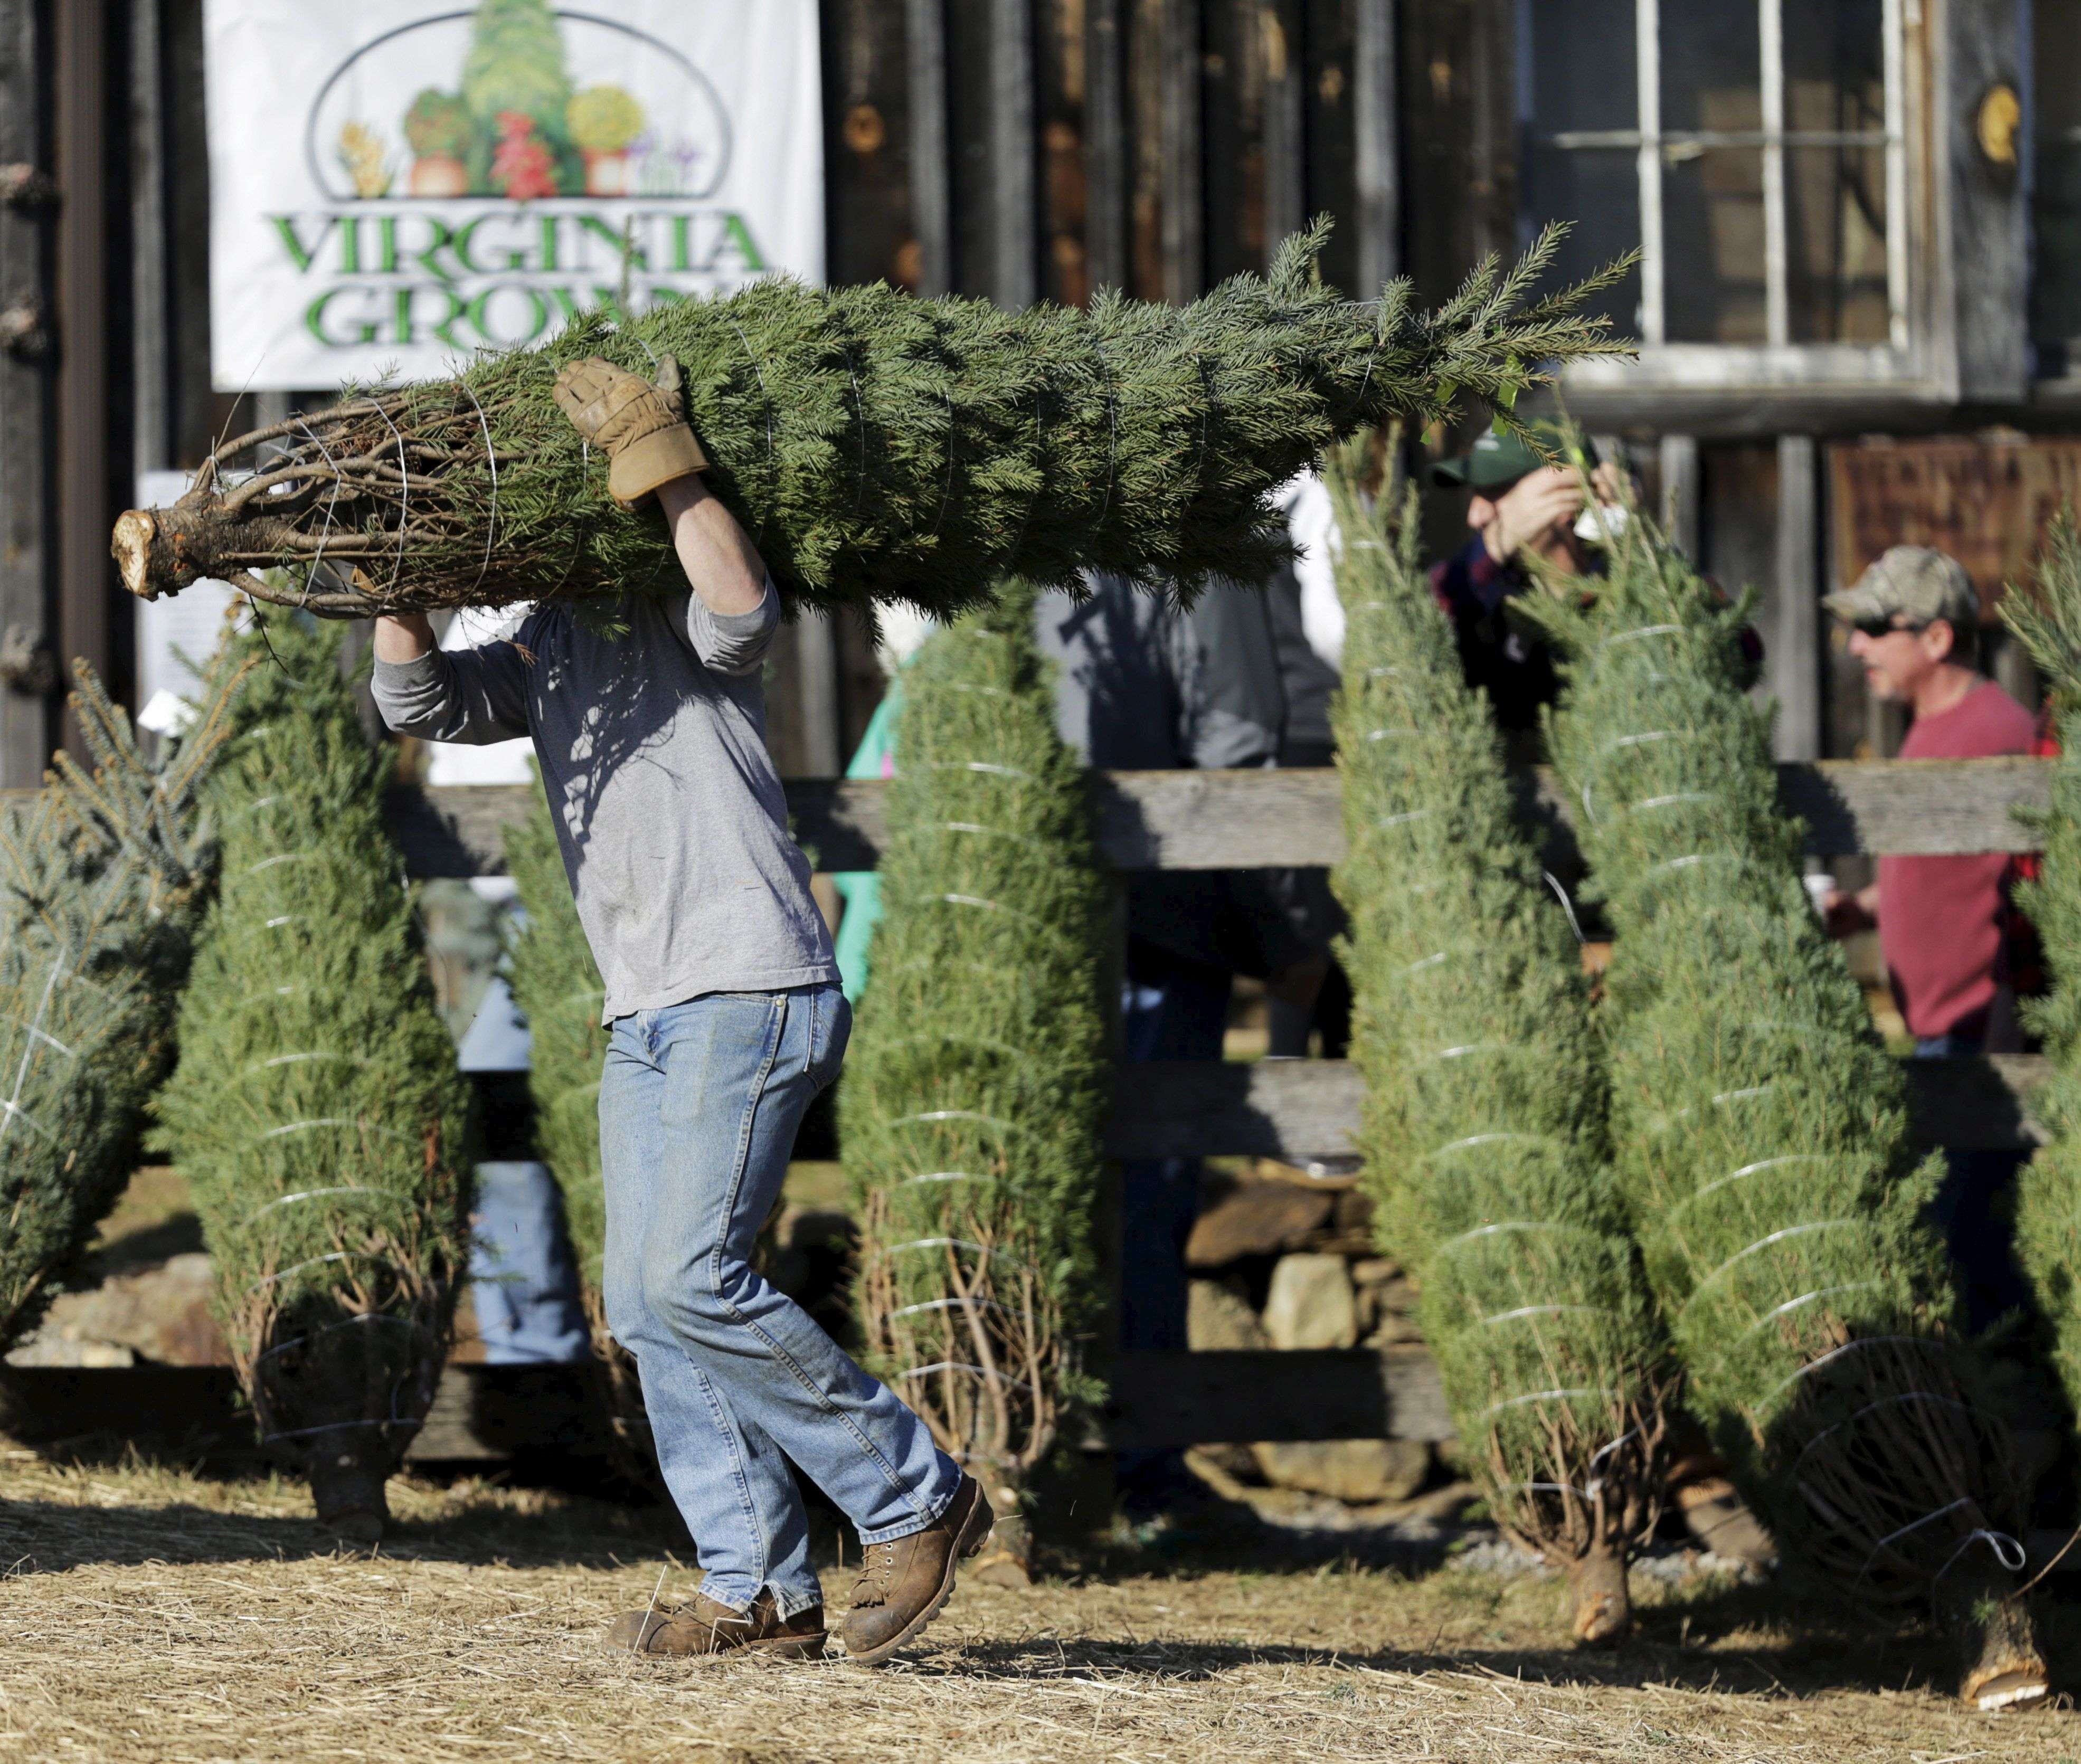 An employee carries a customer's freshly cut tree at the Snickers Gap Christmas Tree Farm in Round Hill, Virginia December 6, 2015. Snickers Gap is a 35 year-old family owned operation that currently has 36,000 Christmas trees planted on forty acres in rural Virginia outside of Washington. Picture taken December 6, 2015.  REUTERS/Gary Cameron